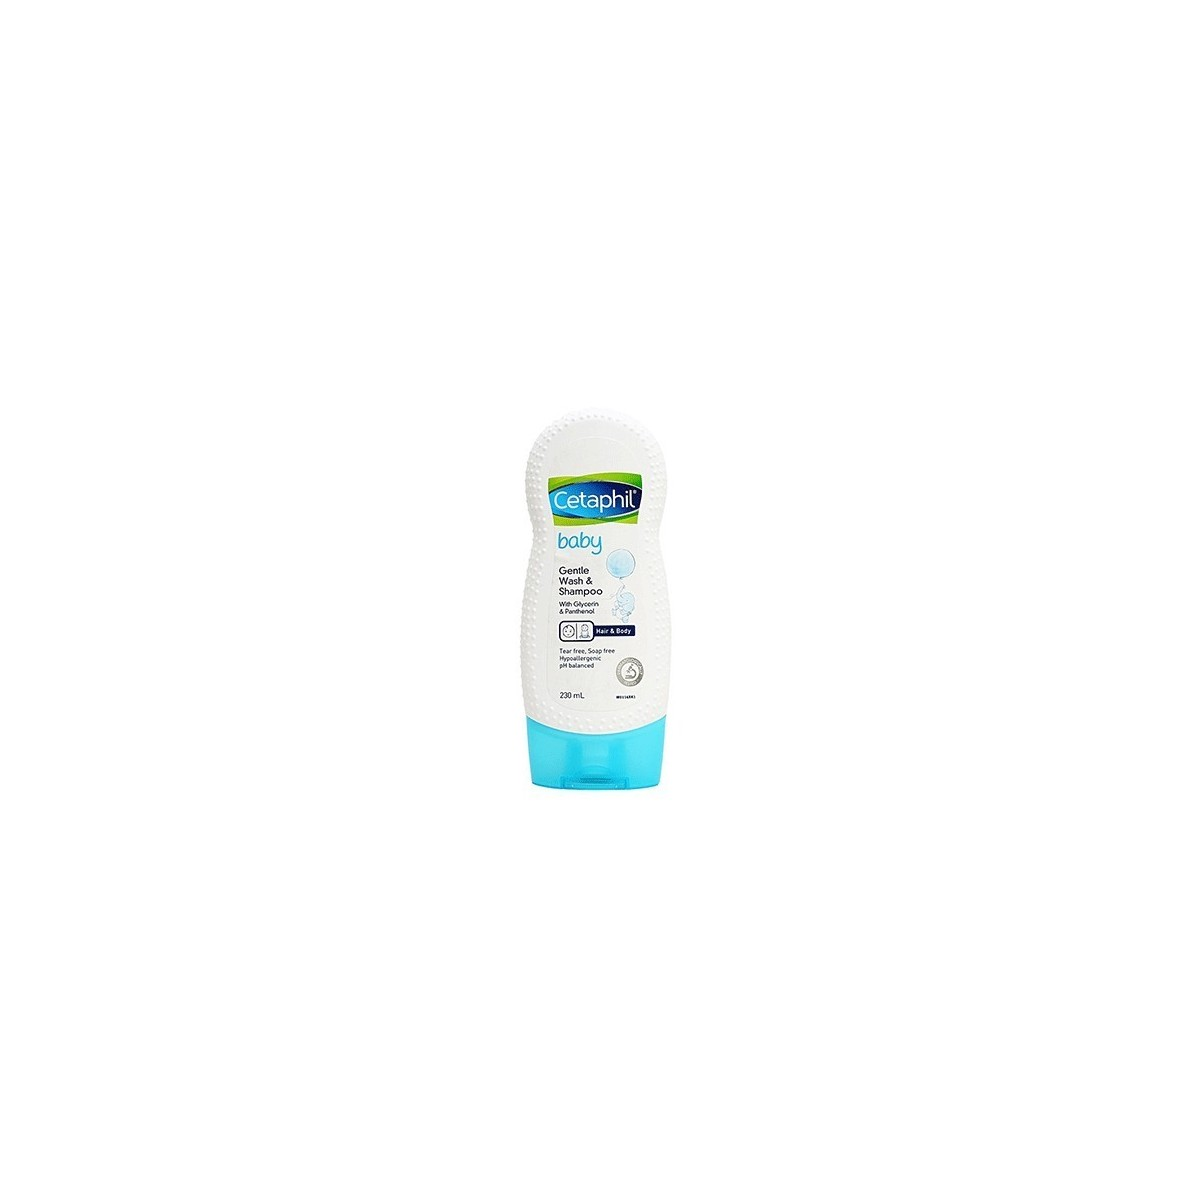 Cetaphil Baby Gentle Wash & Shampoo 230 Ml